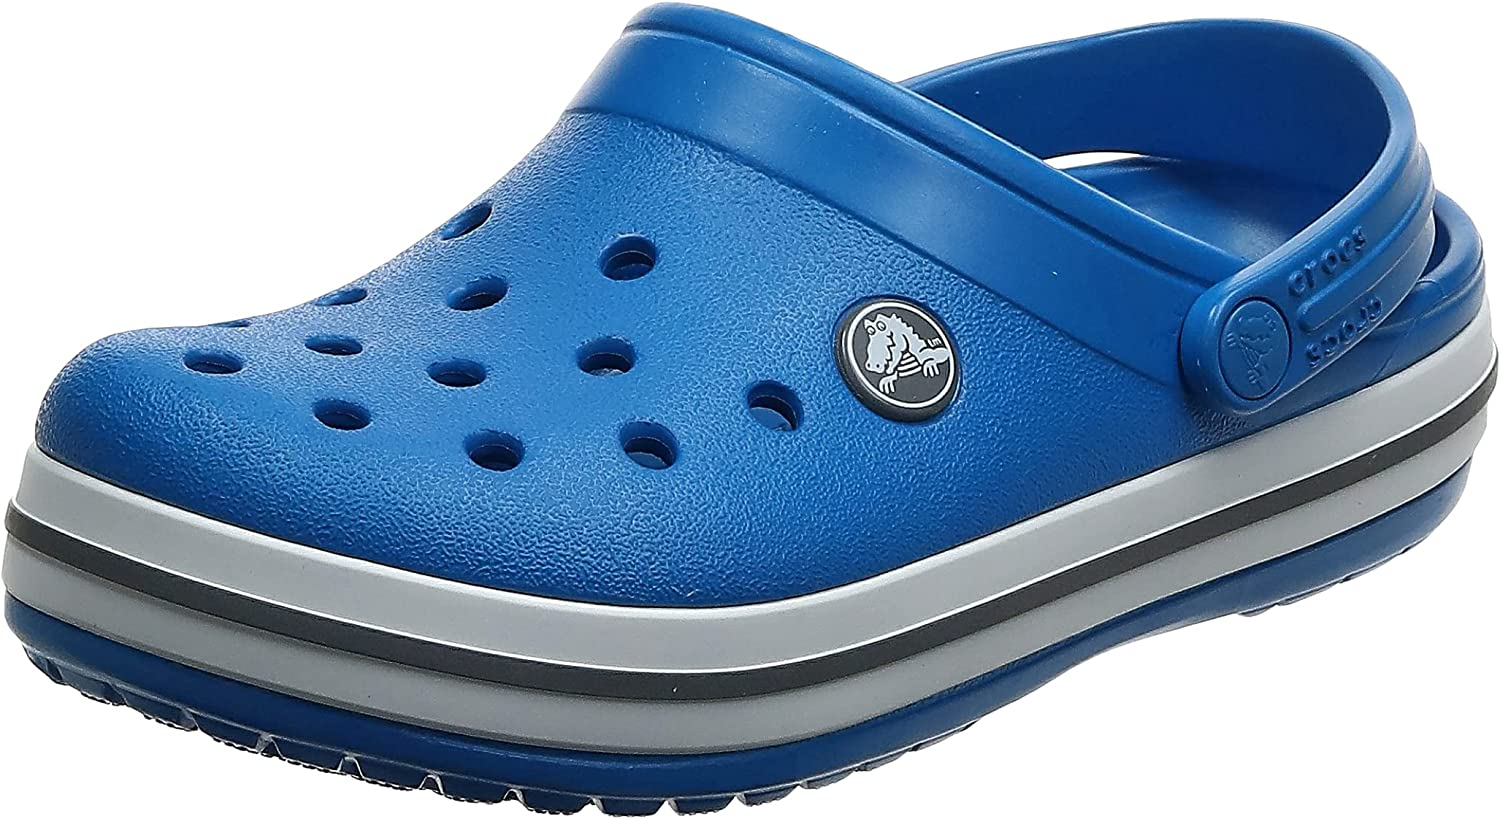 Crocs Kids' Crocband Clog   Slip On Shoes for Boys and Girls   Water Shoes